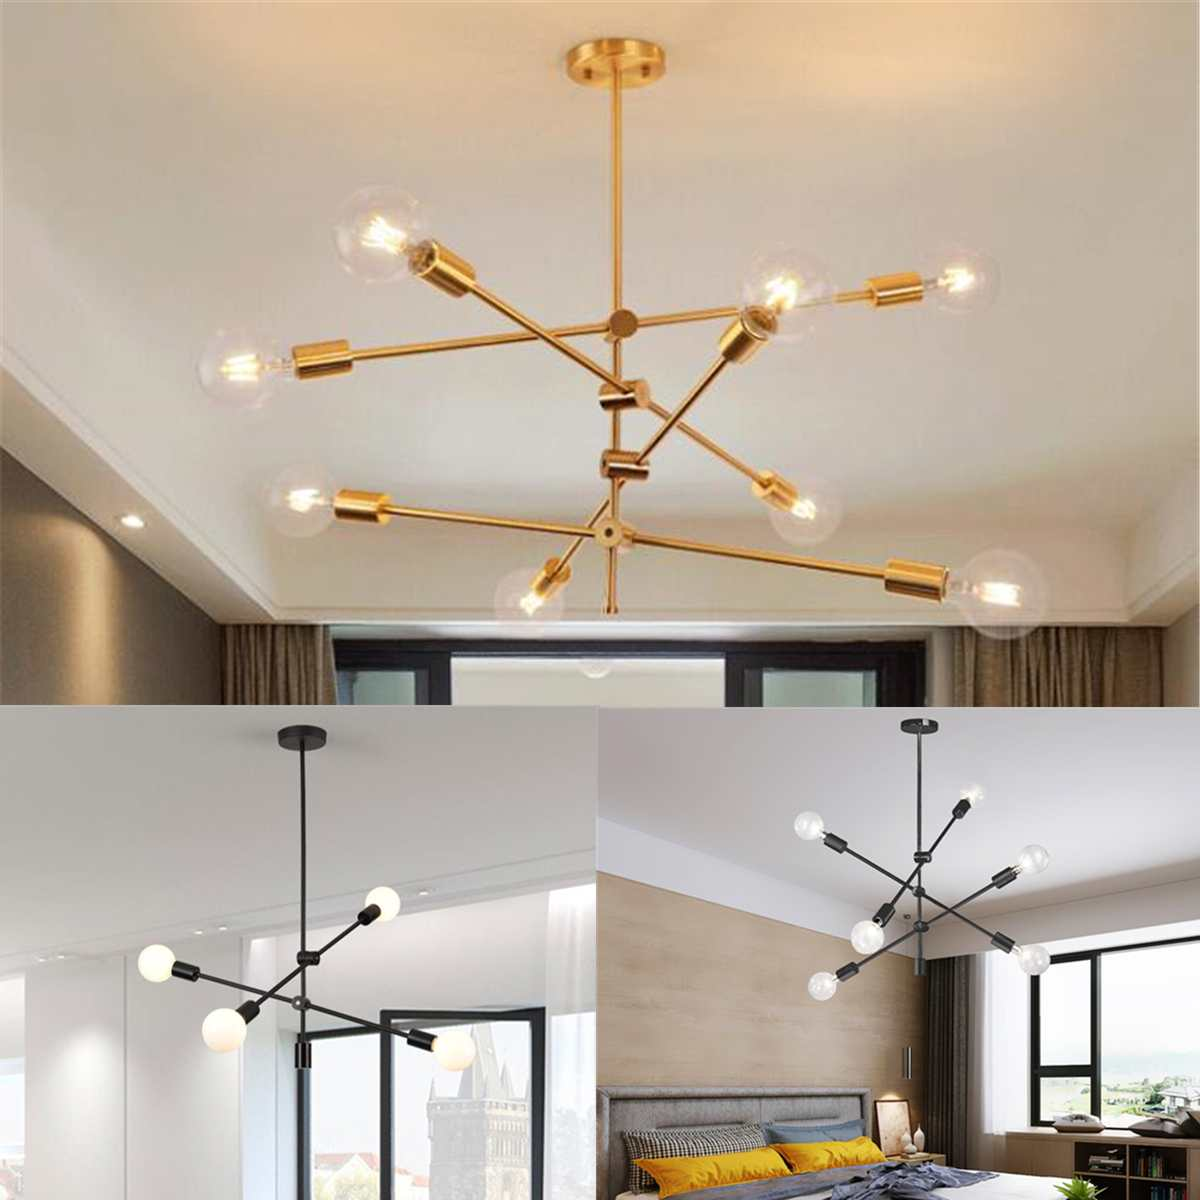 Nordic Modern LED Light E27 Chander Lights Iron Chandeliers Industrial Edison 4 6 8 Lights Chandelier Indoor Lighting Gold LampNordic Modern LED Light E27 Chander Lights Iron Chandeliers Industrial Edison 4 6 8 Lights Chandelier Indoor Lighting Gold Lamp